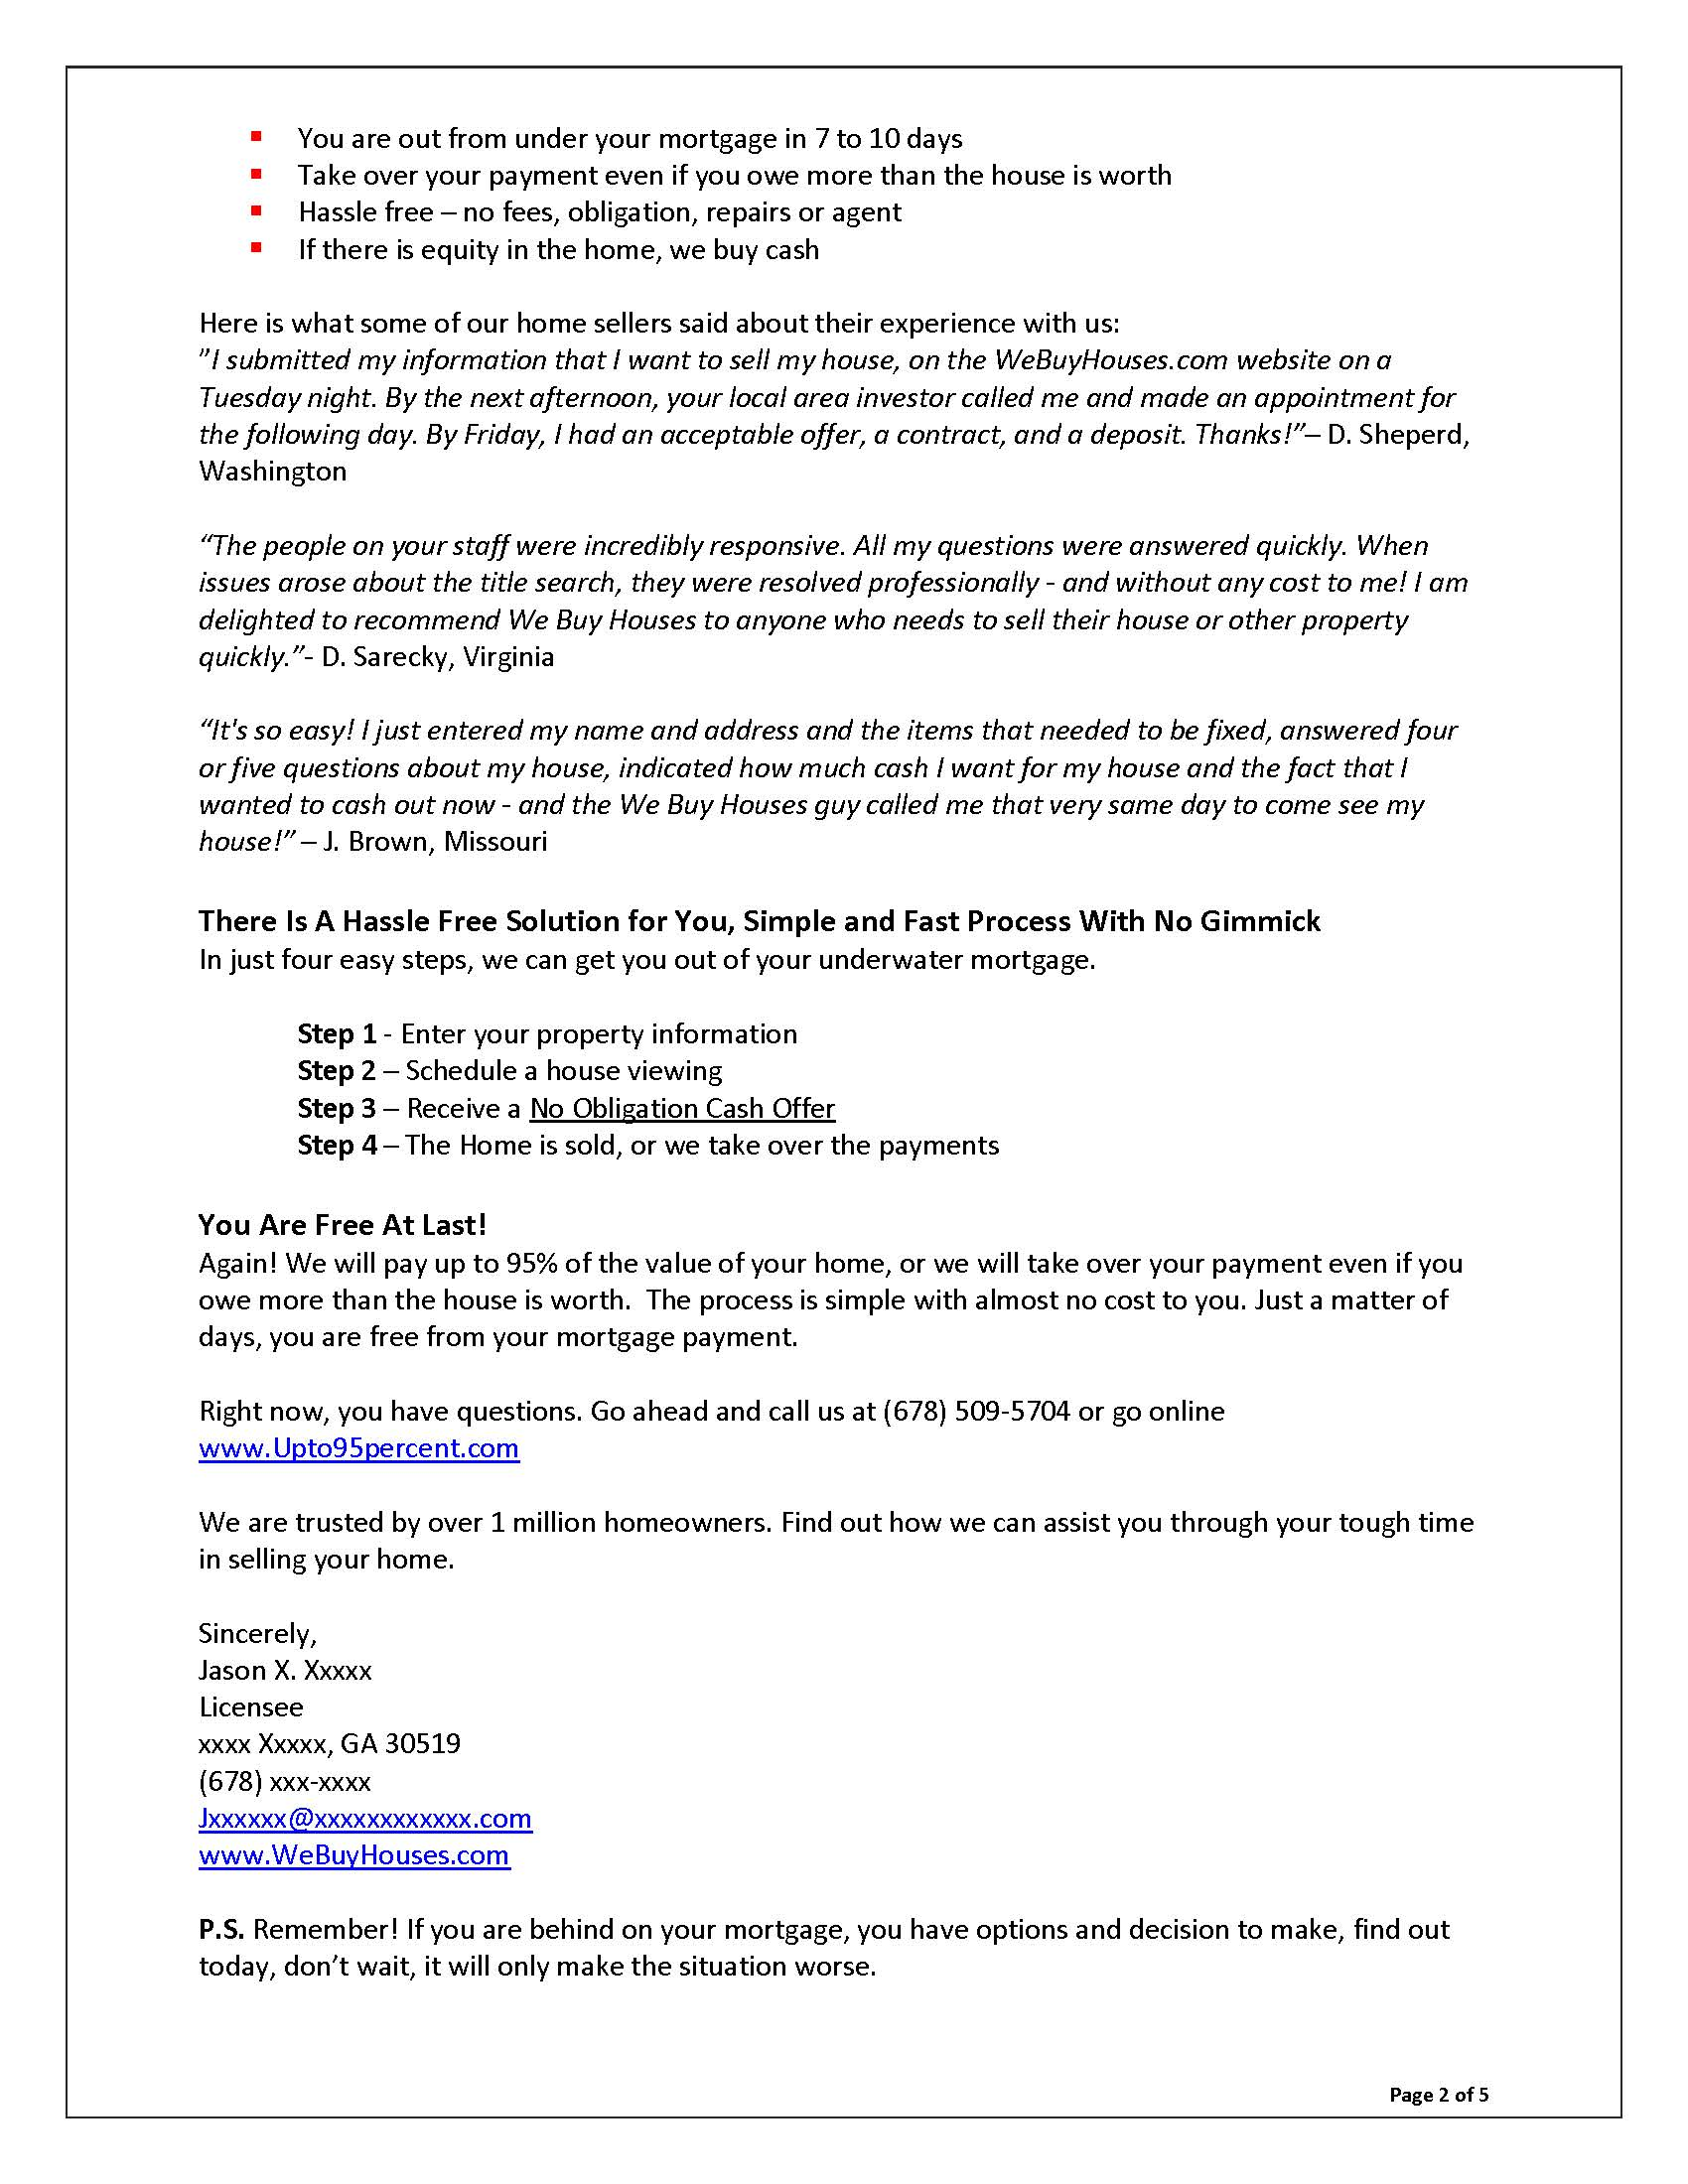 Sales Letters Grovers Copywriting – Sales Letter Sample